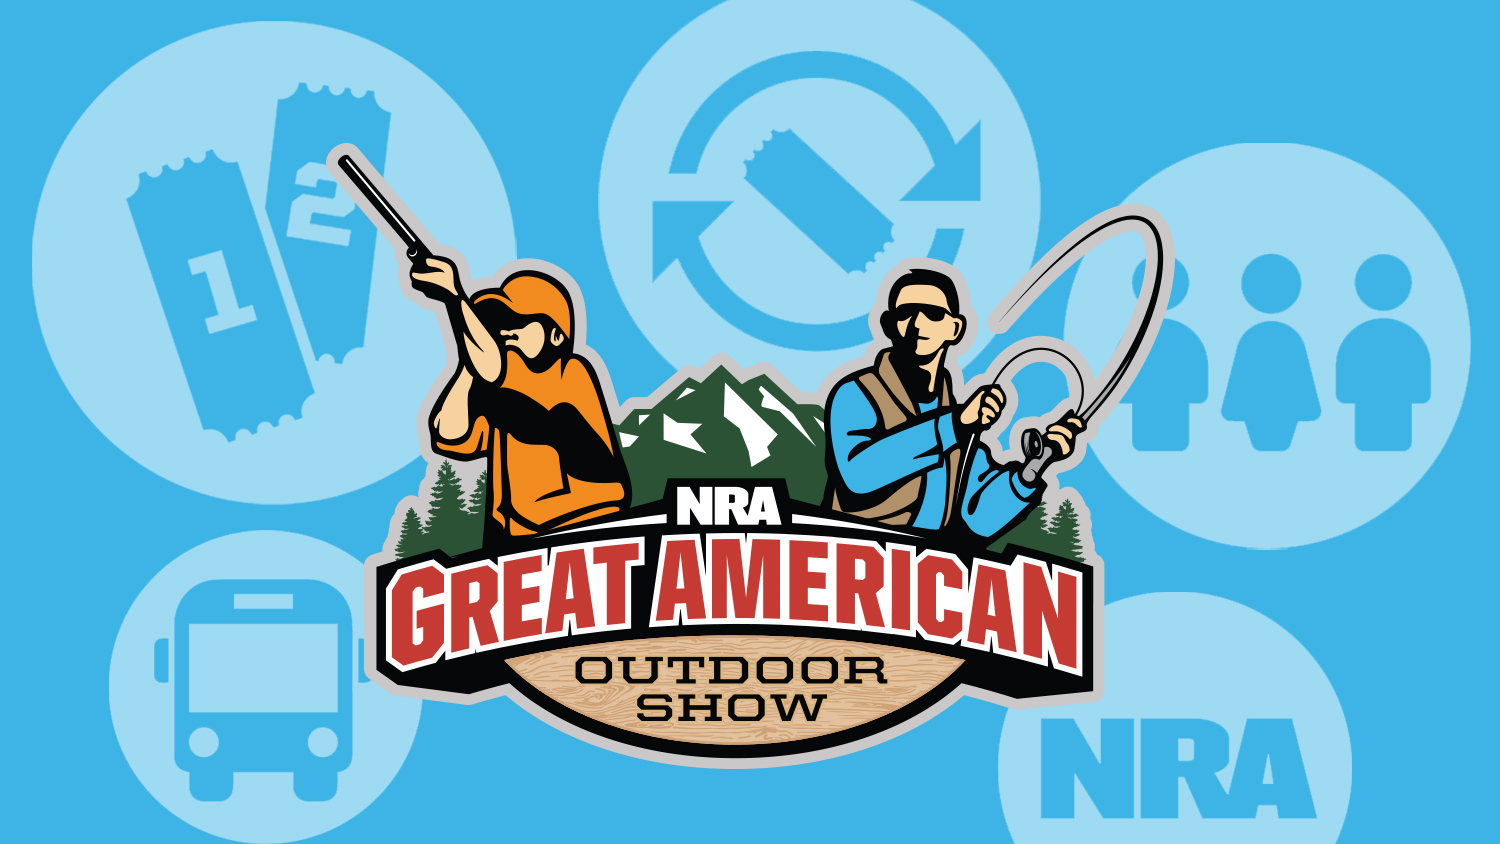 Take Advantage of Ticket Specials at the Great American Outdoor Show!